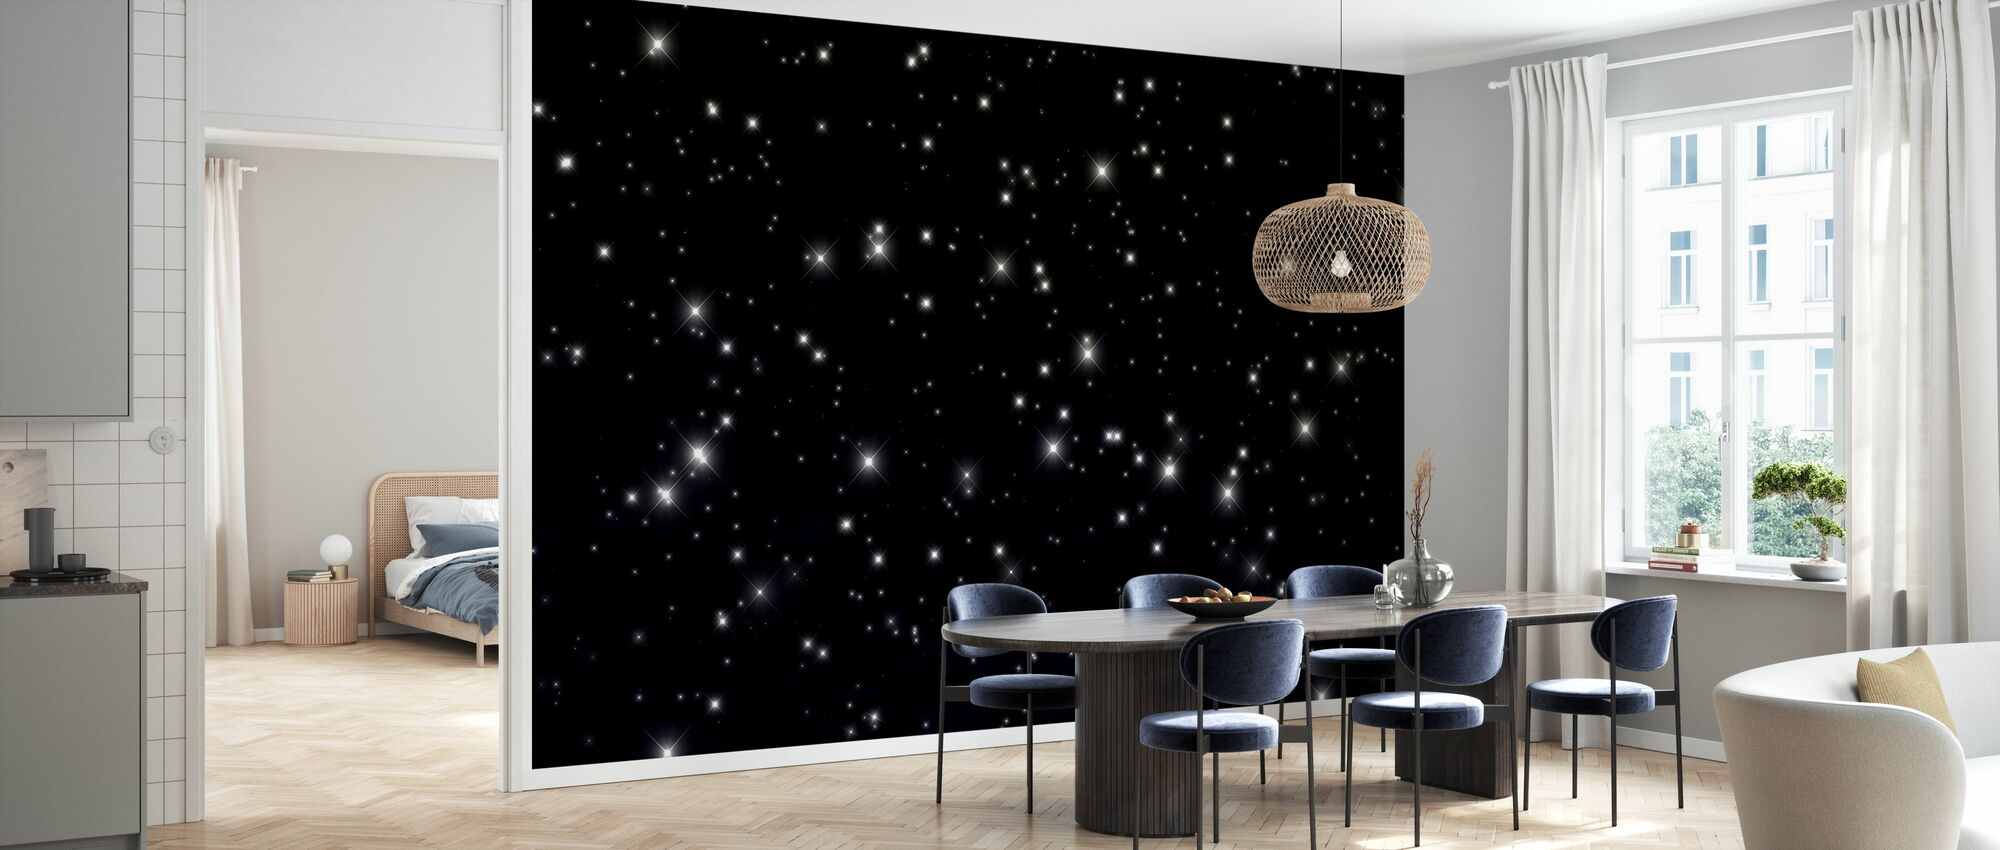 Starry Space - Wallpaper - Kitchen